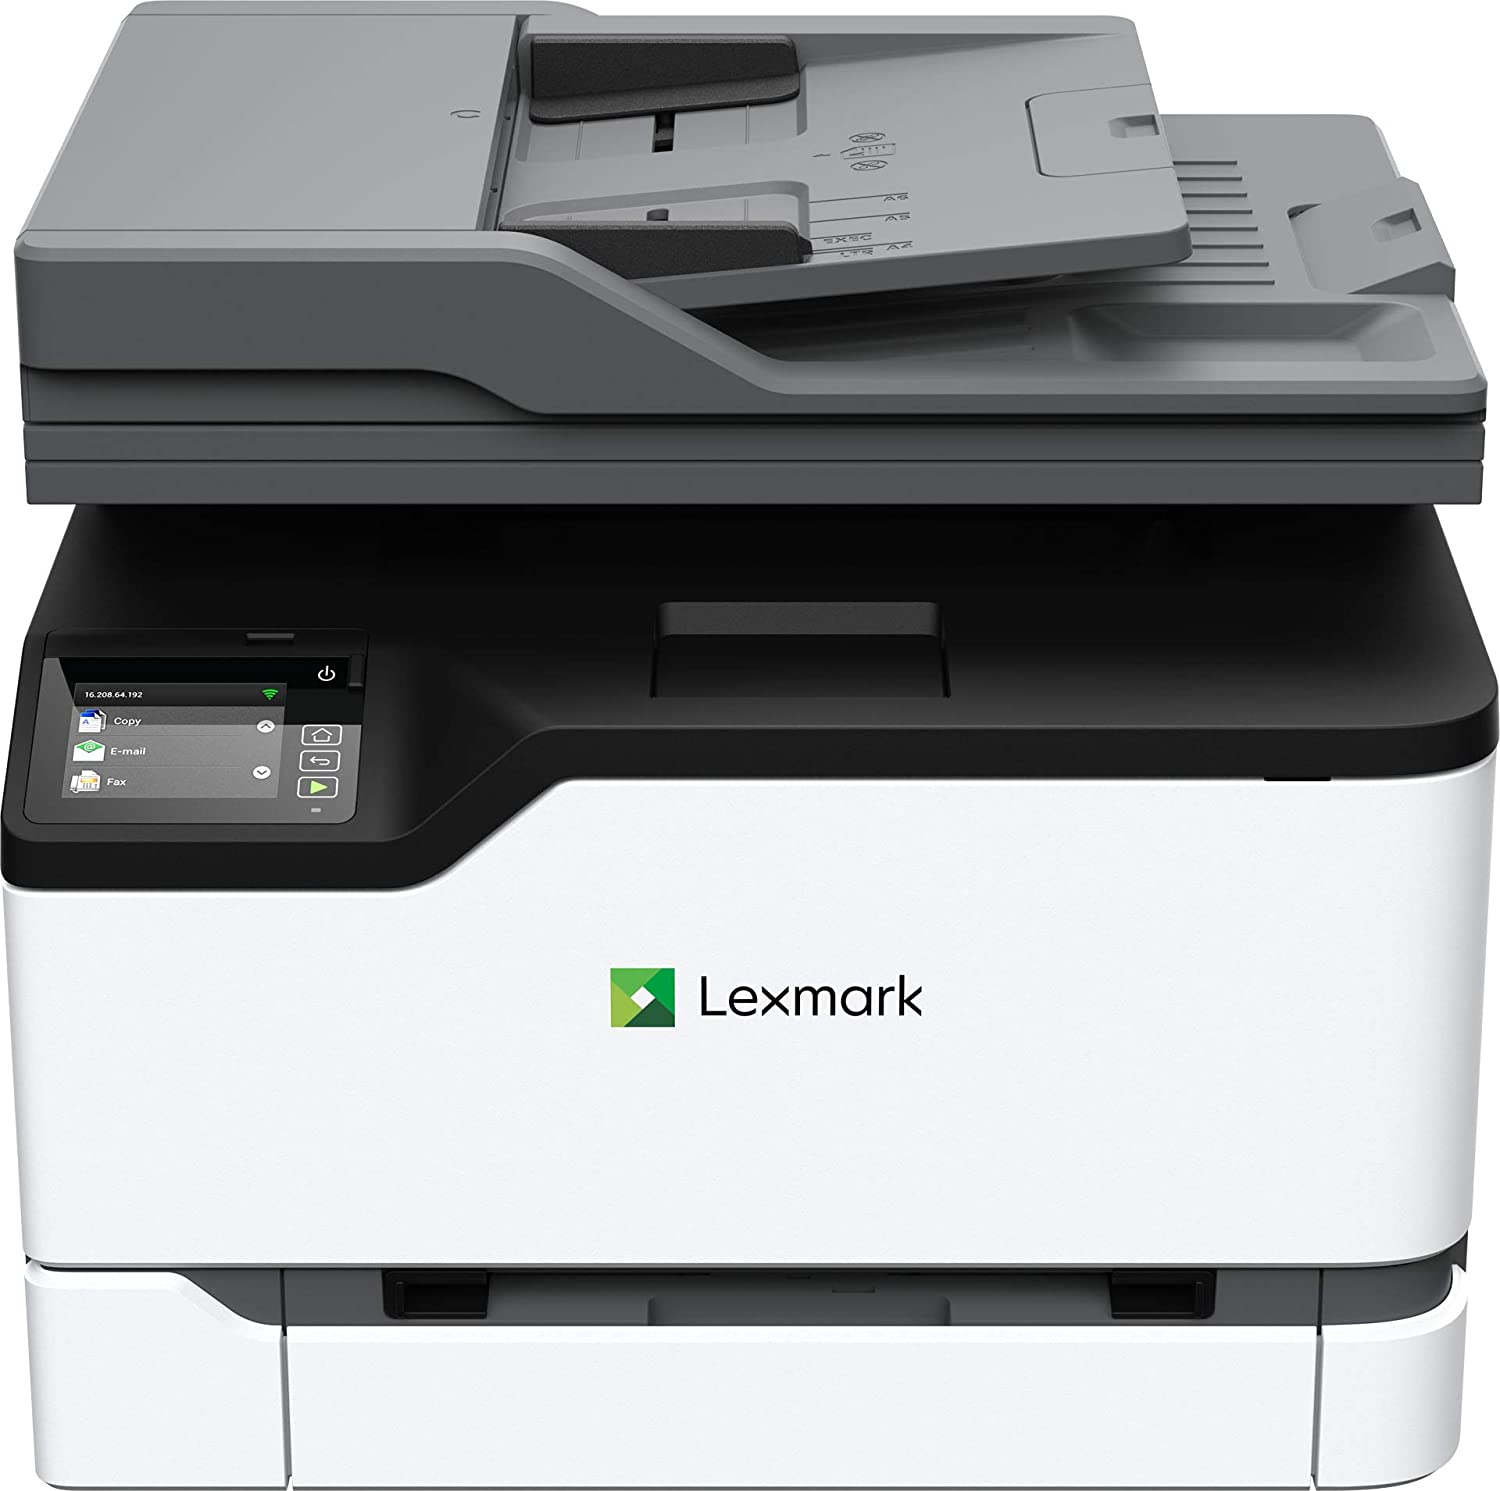 Lexmark MC3224adwe Color Multifunction Laser Printer with Print, Copy, Fax, Scan and Wireless capabilities, Two-Sided Printing with Full-Spectrum Security and Prints Up To 24 ppm (40N9050)